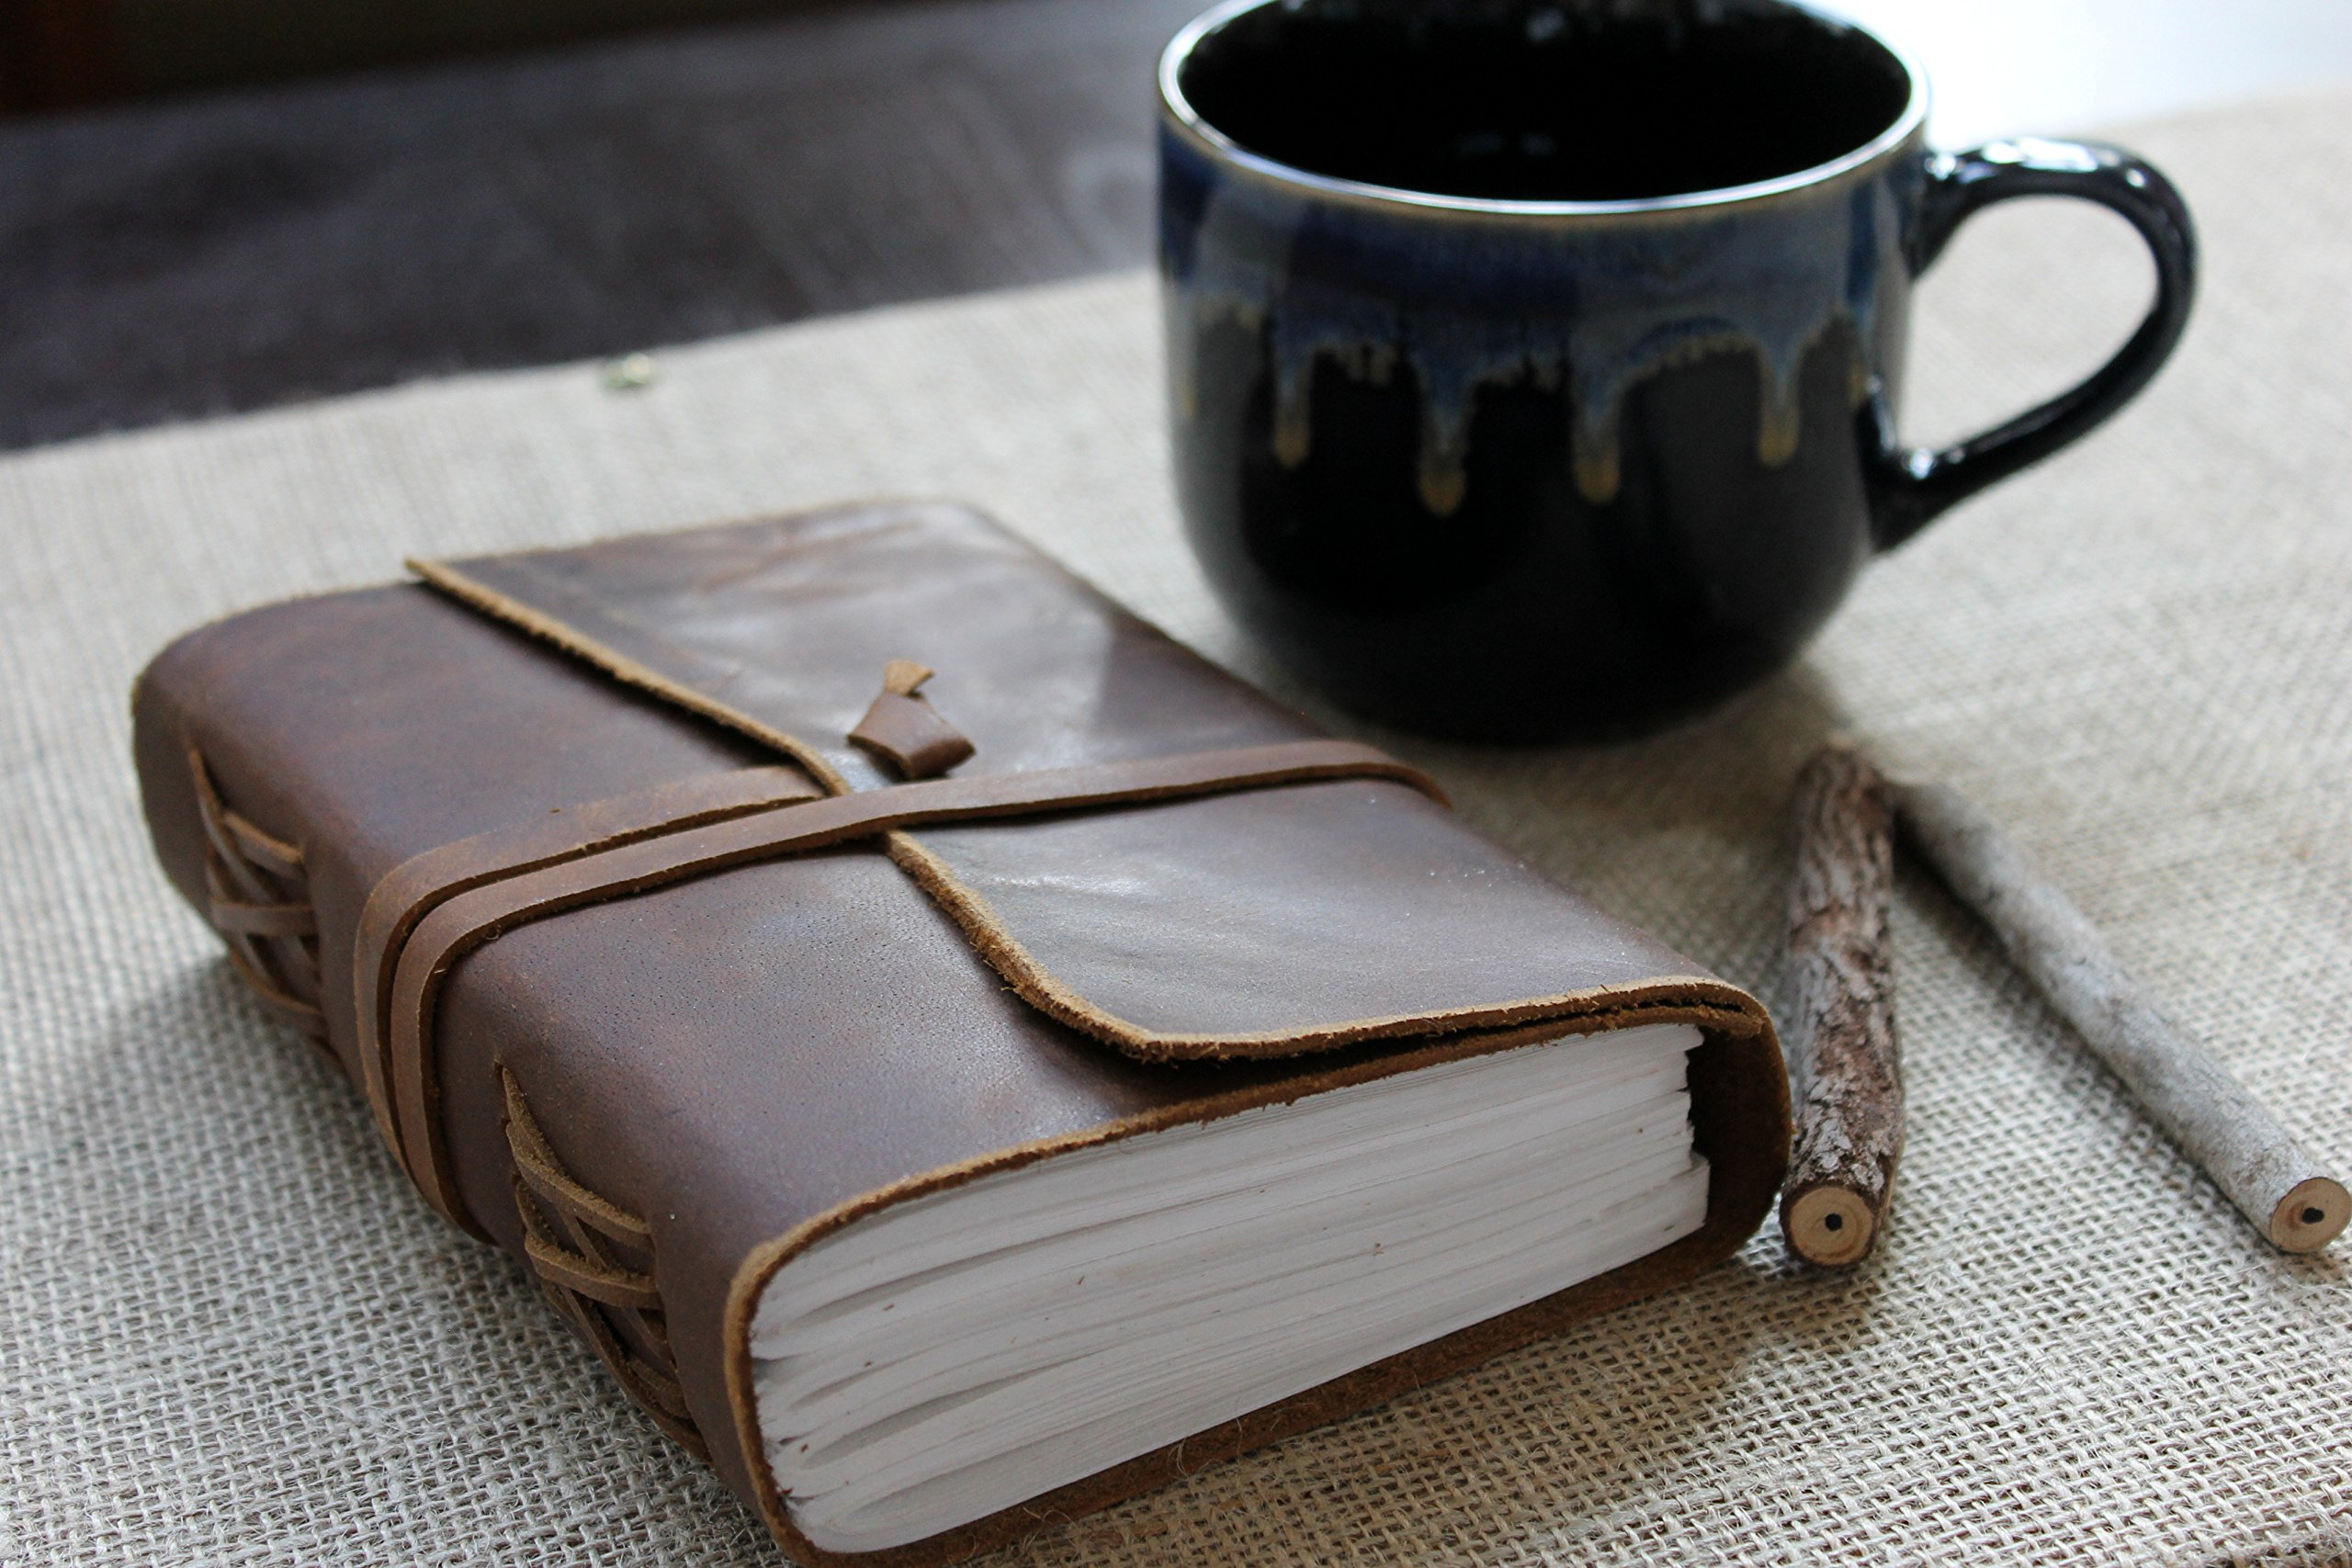 Antique Dark Brown Crazy-Horse Wax Leather Journal (Handmade) - Leather Cord Coptic Bound and leather tie closure -SPECIAL OFFER NOW + 10% OFF!